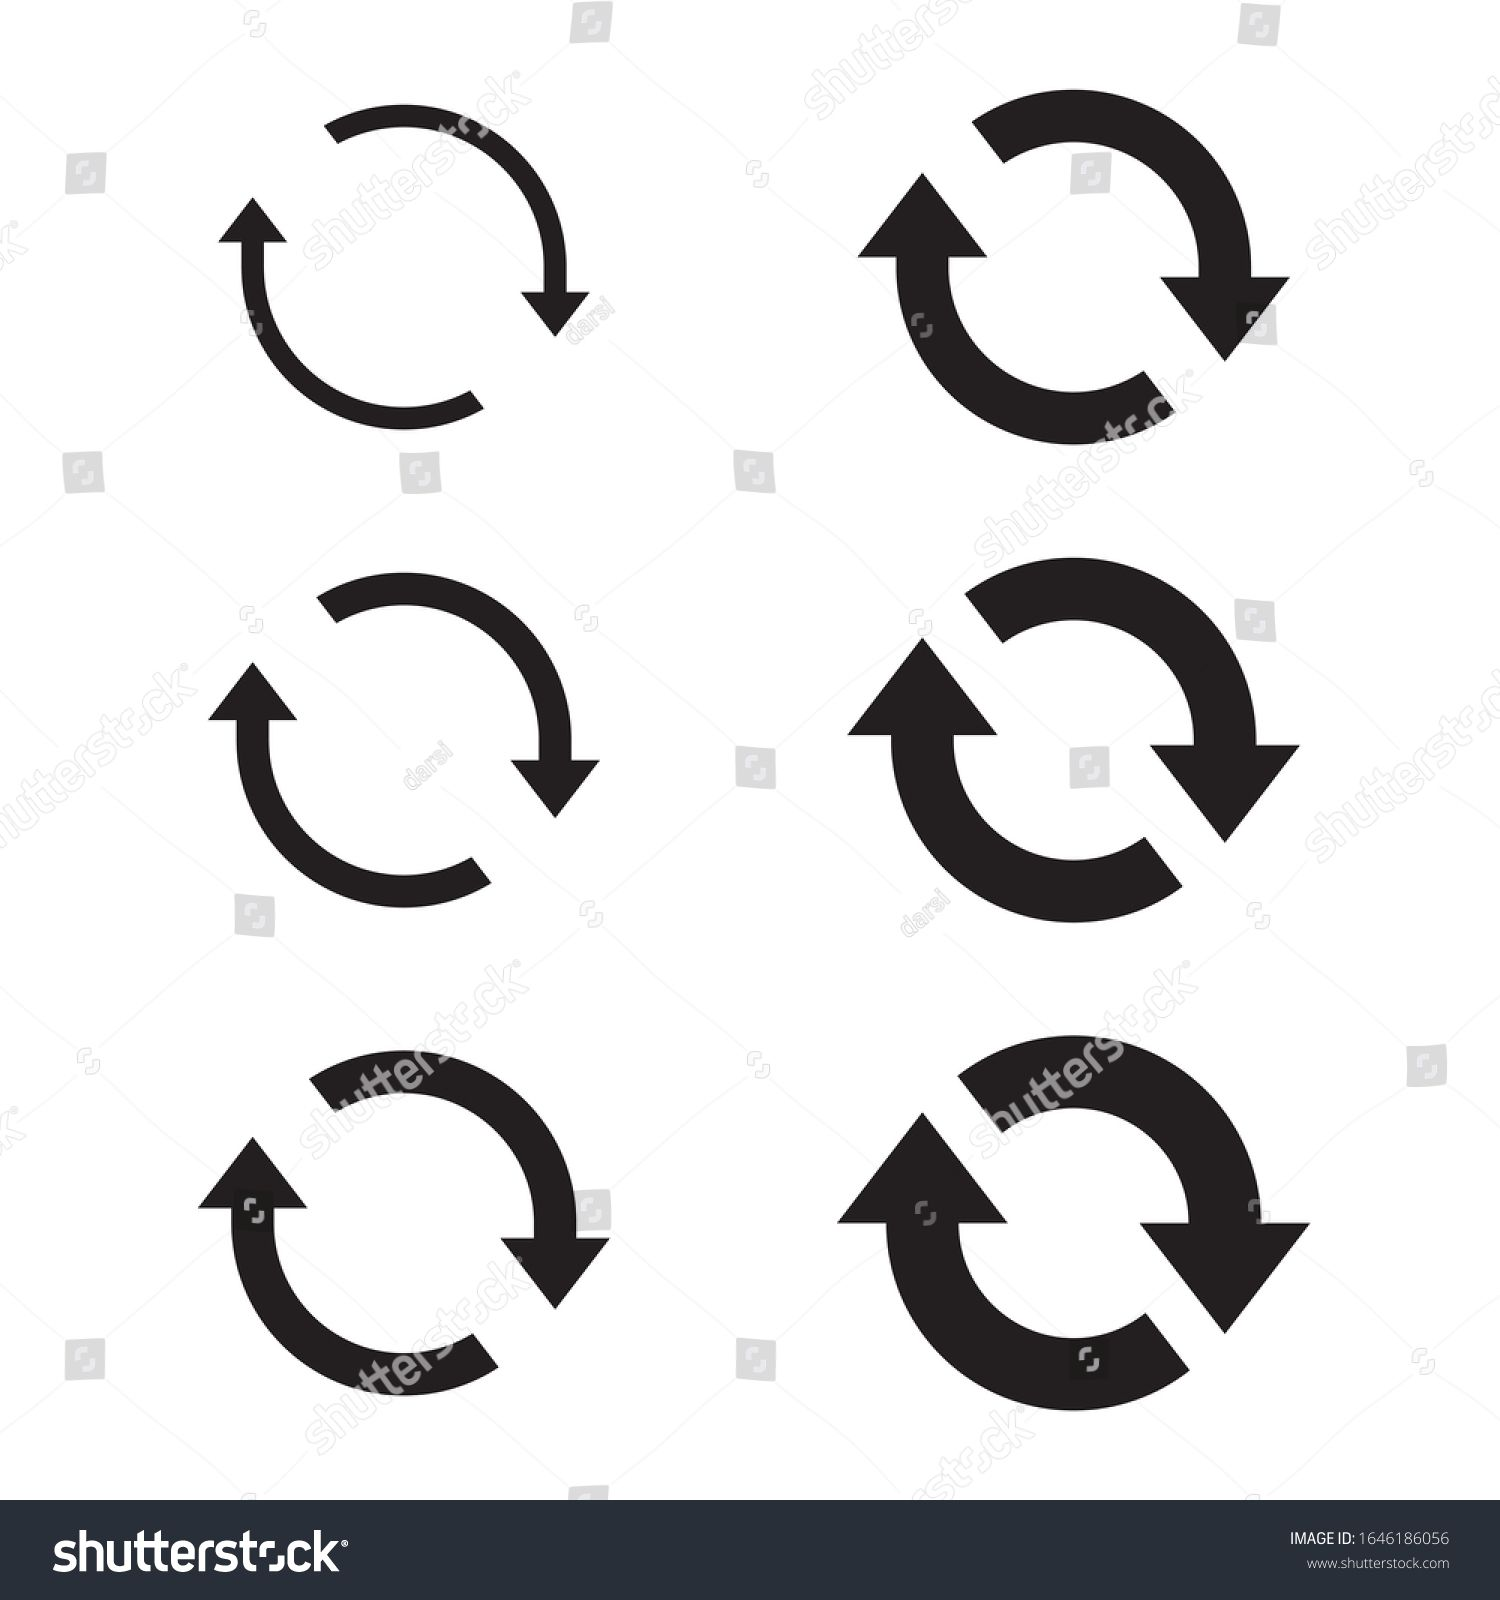 Circle arrow icon set, refresh, reload, rotation, reset